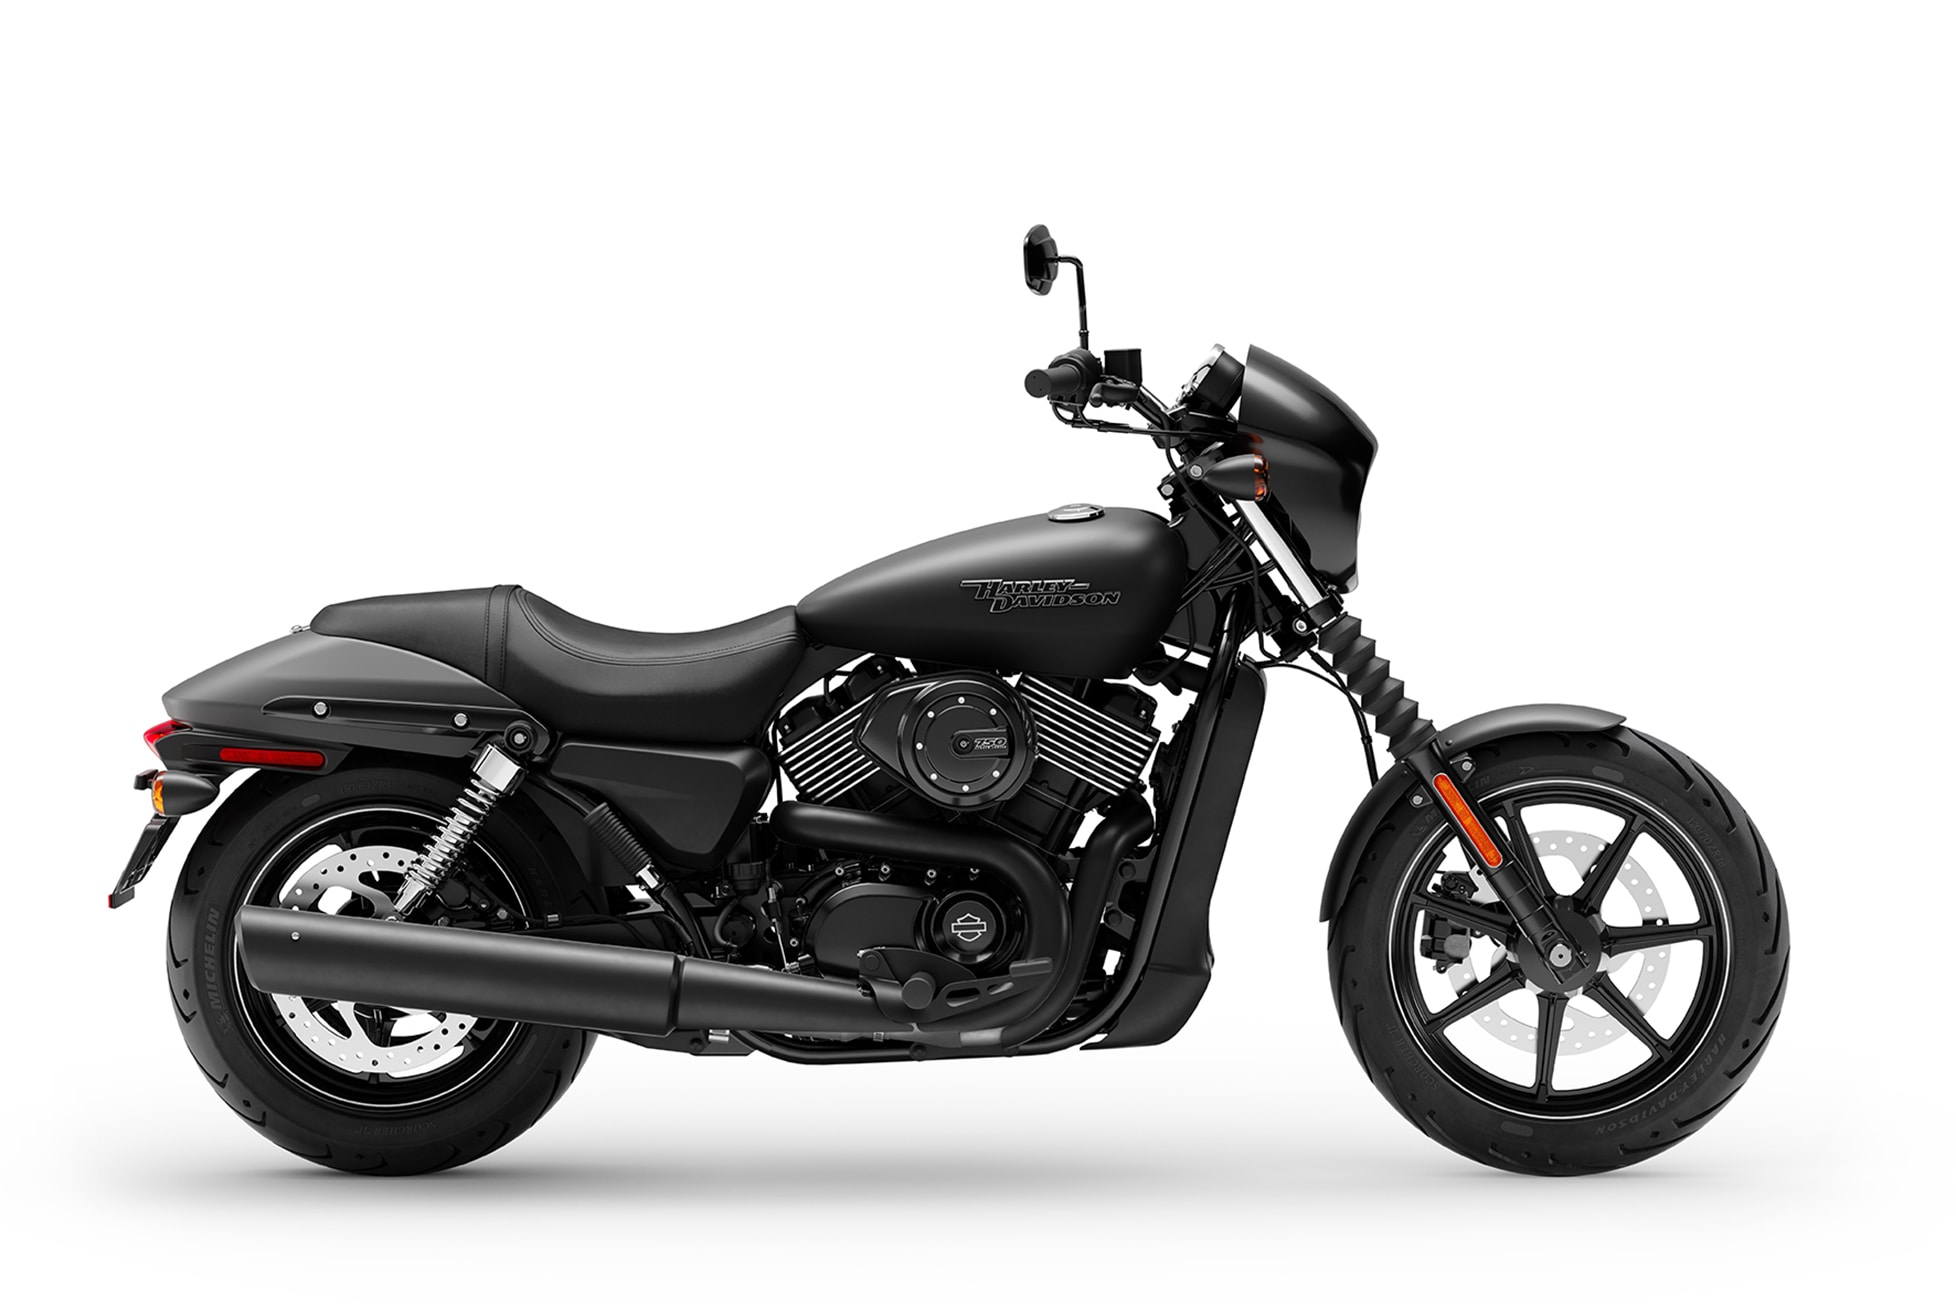 Harley Street Glide Owners Manual Best User Guides And Manuals 2012 Davidson 2019 Motorcycle Lineup Usa Rh Com Service 2008